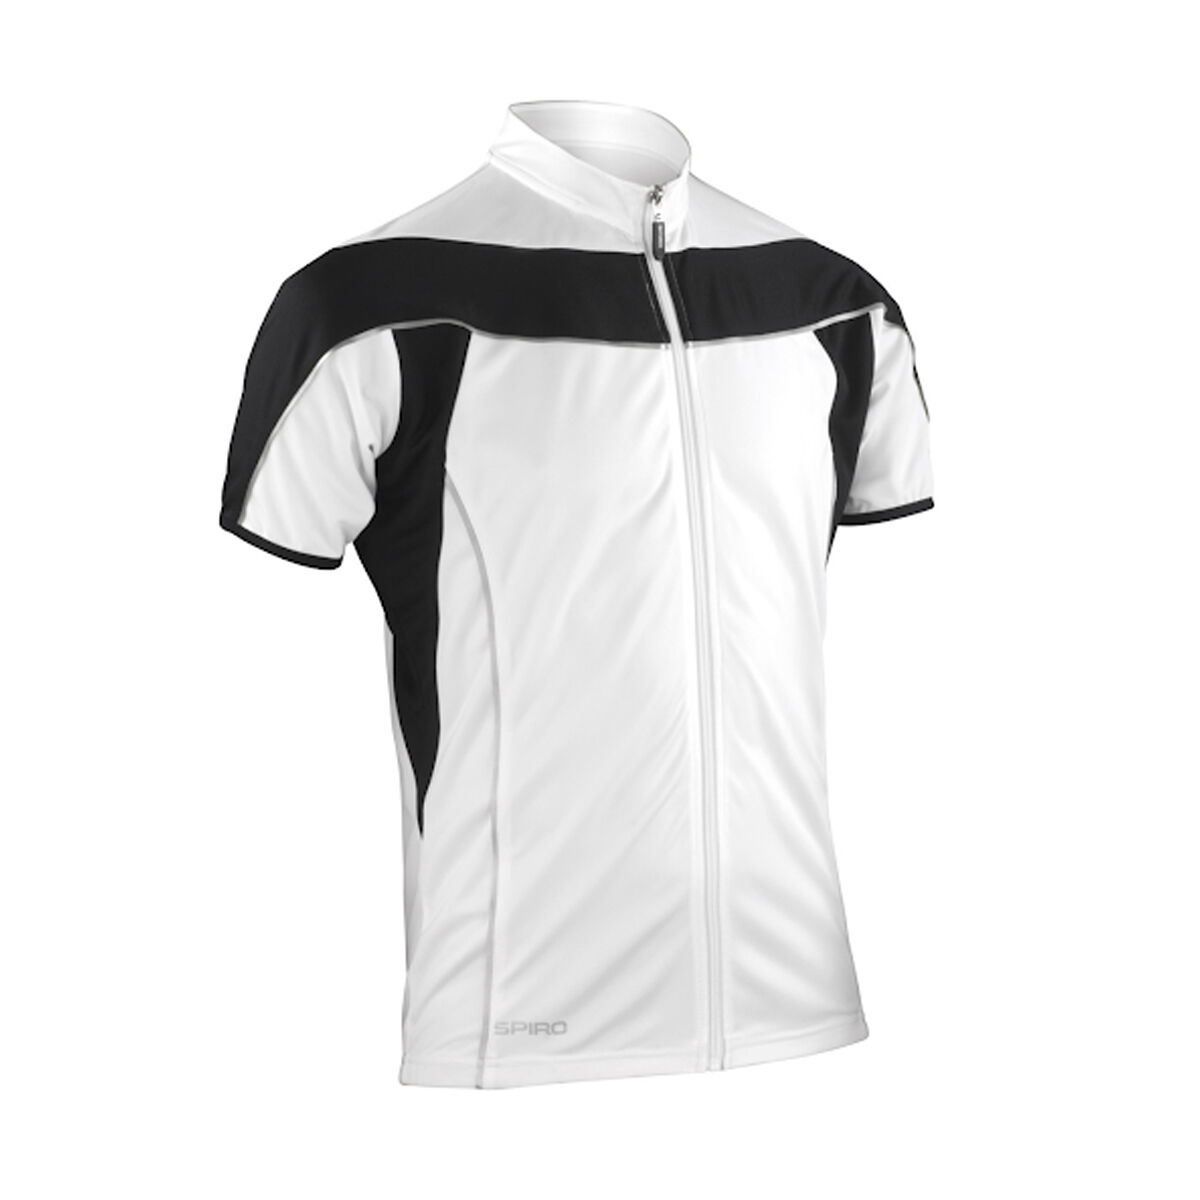 Recycled Polyester Cycle Top